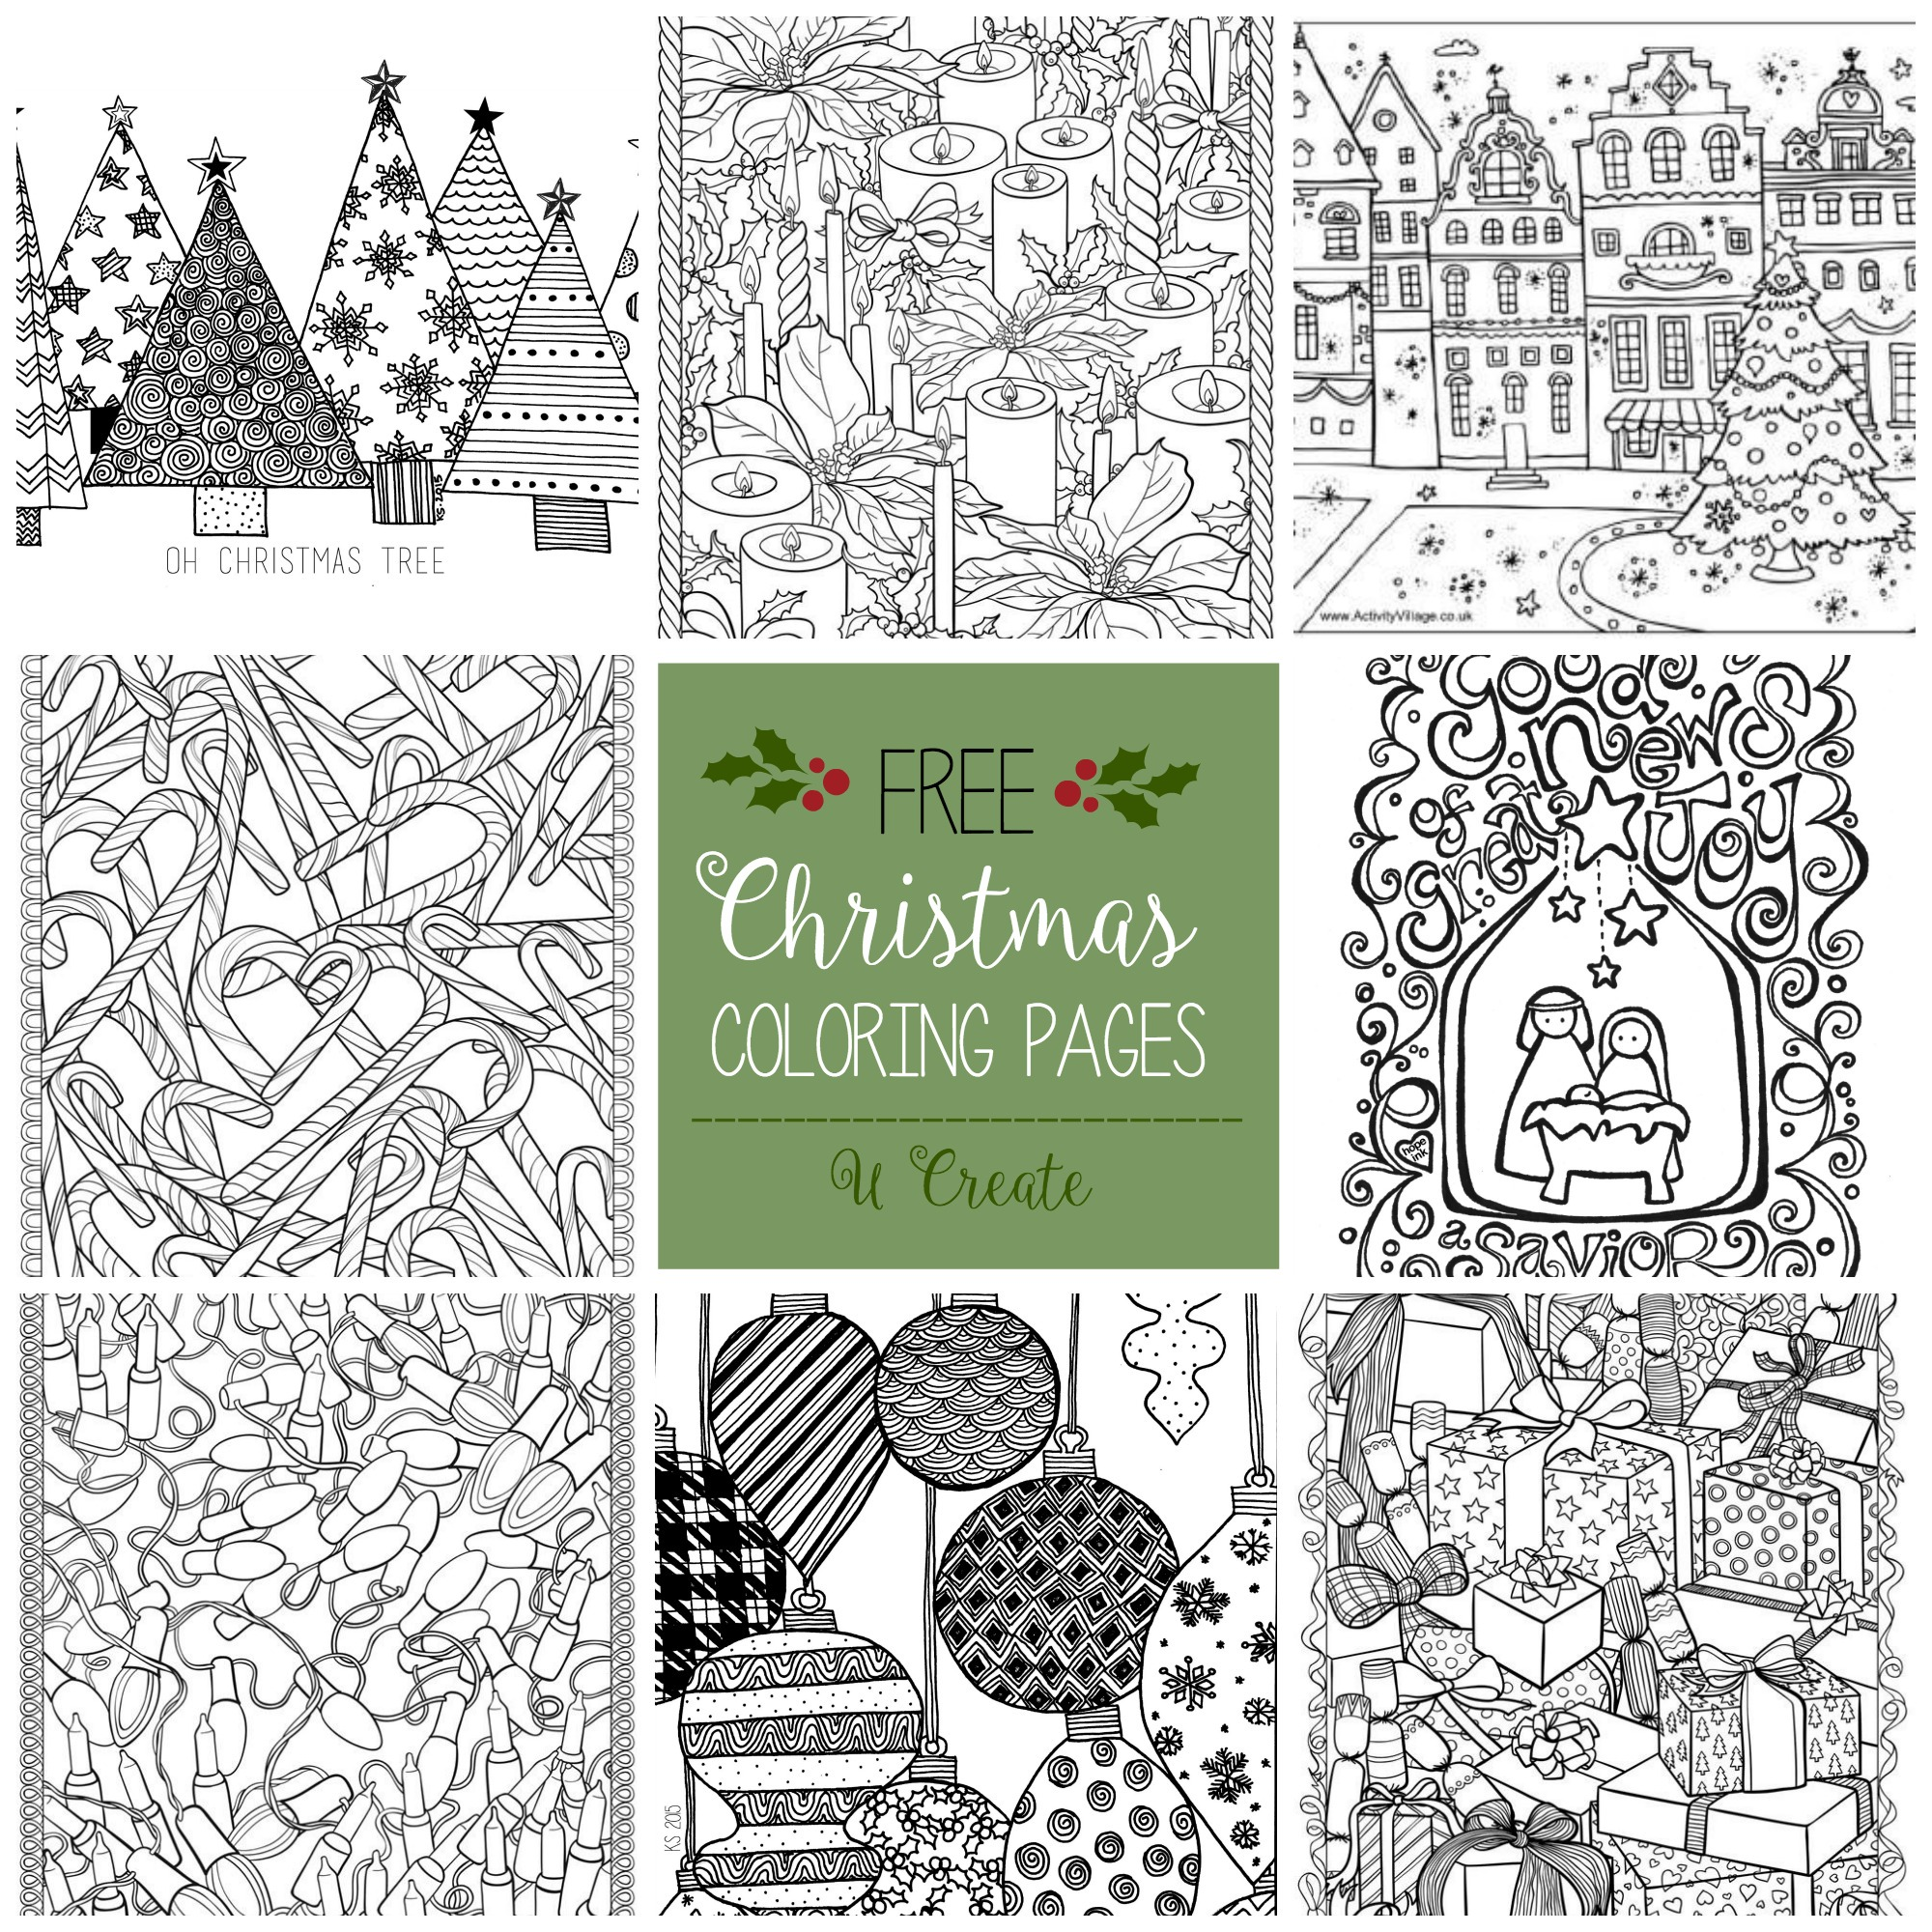 Unique Christmas Coloring Pages With Oh Tree Page U Create